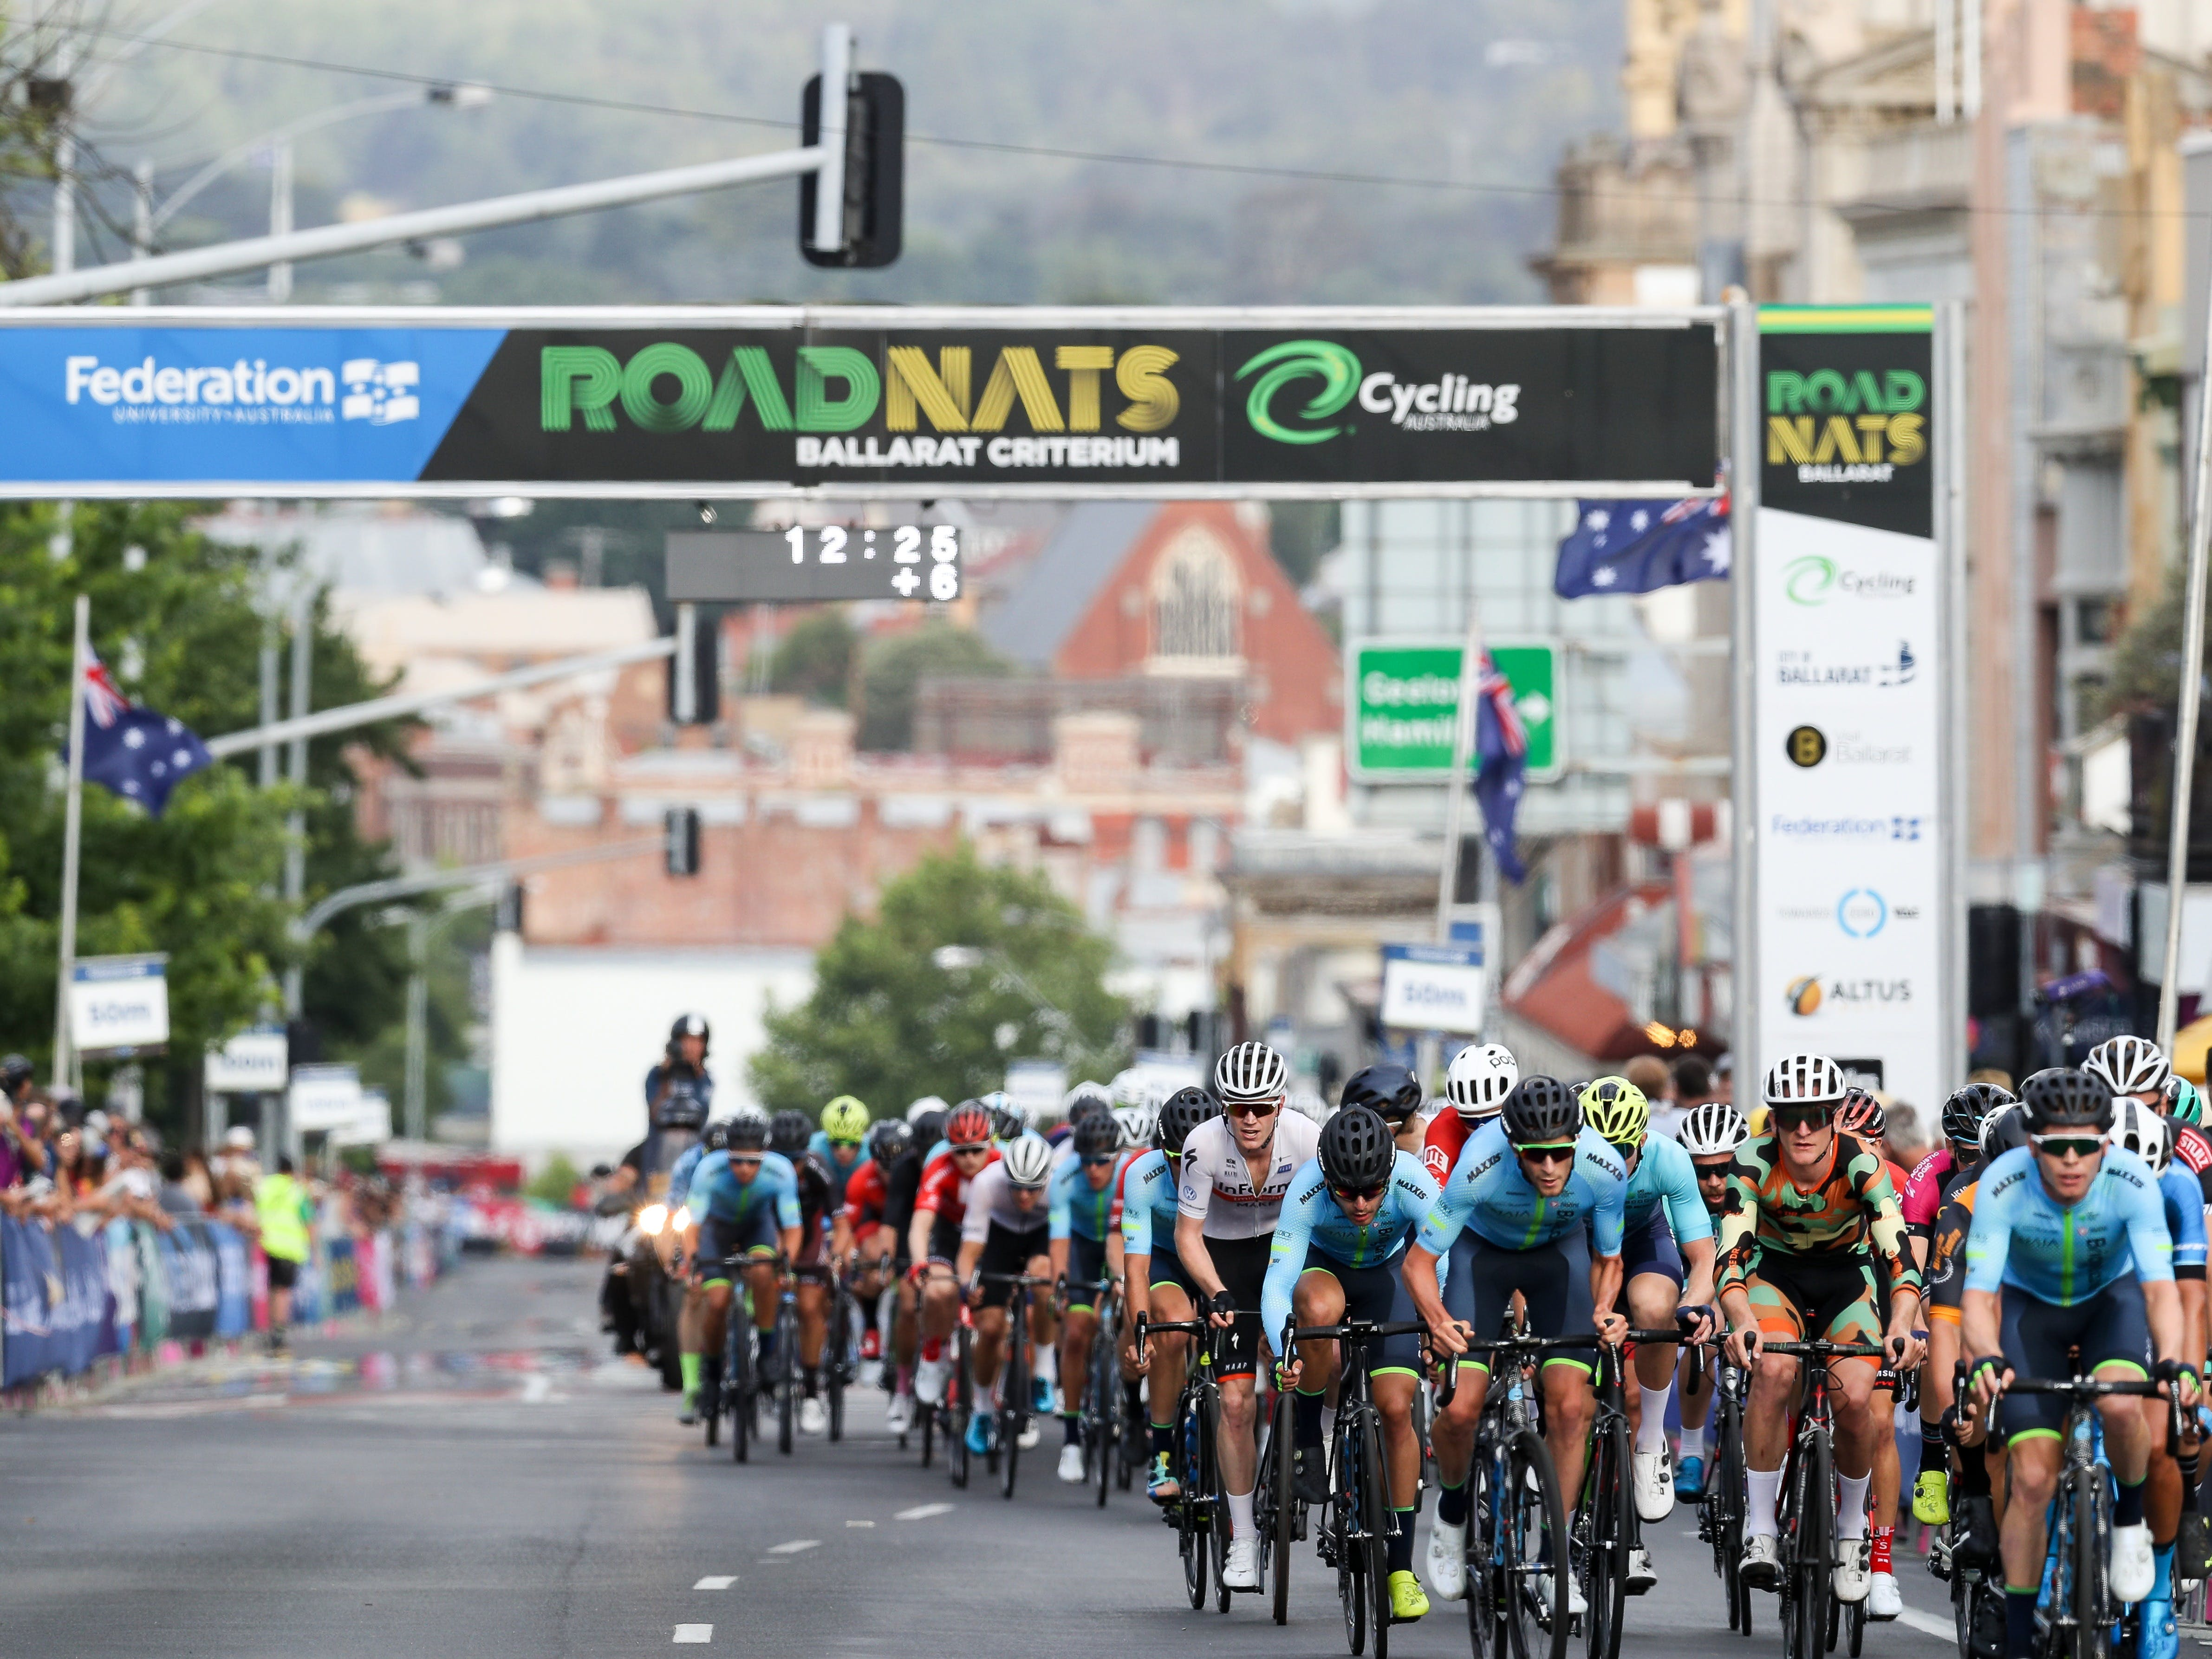 Federation University Criterium National Championships - Ballarat - Accommodation Brisbane